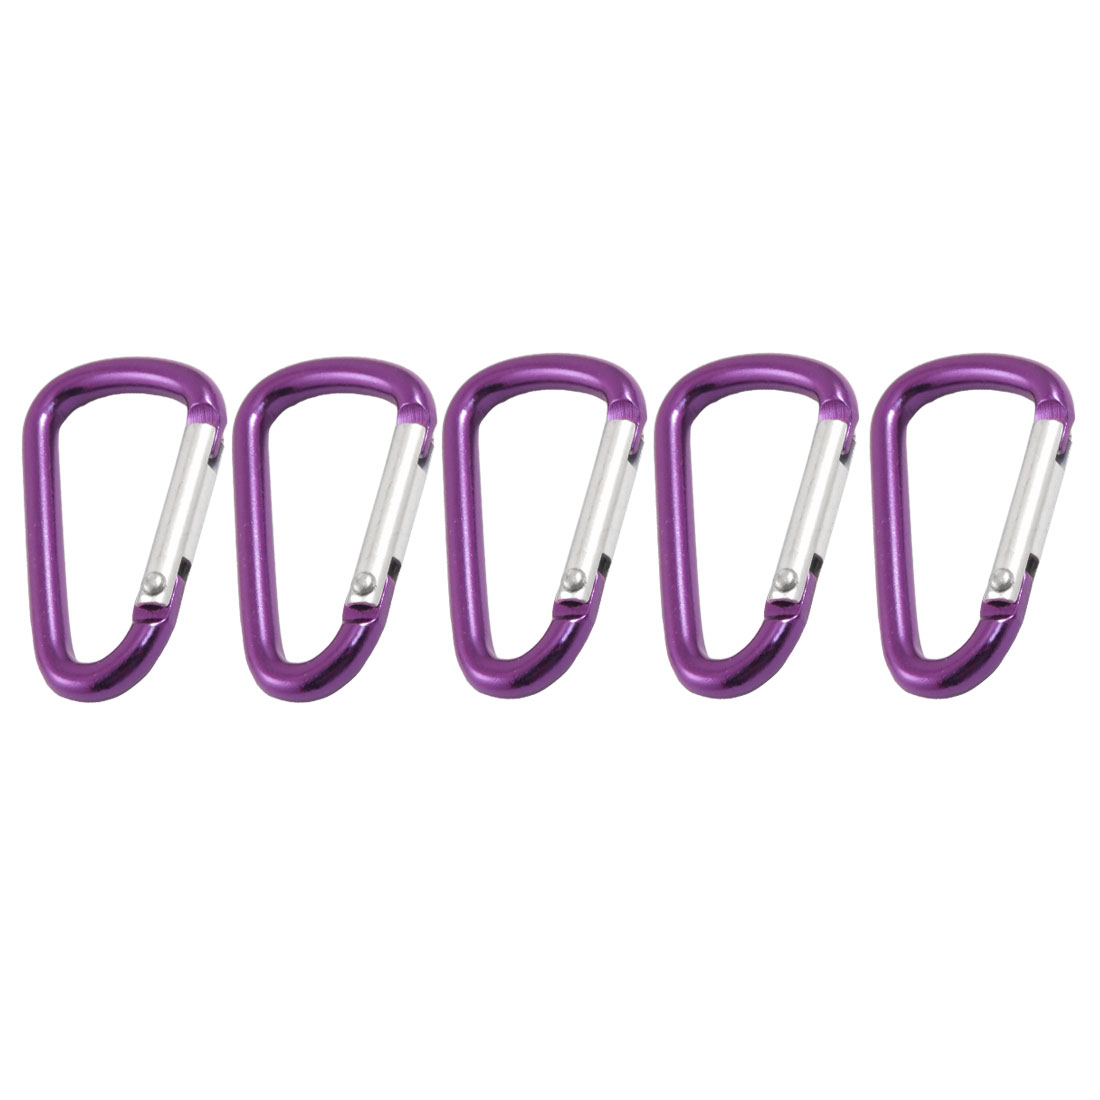 5 Pcs Travel D Shaped Aluminum Alloy Carabiner Clip Hooks Purple